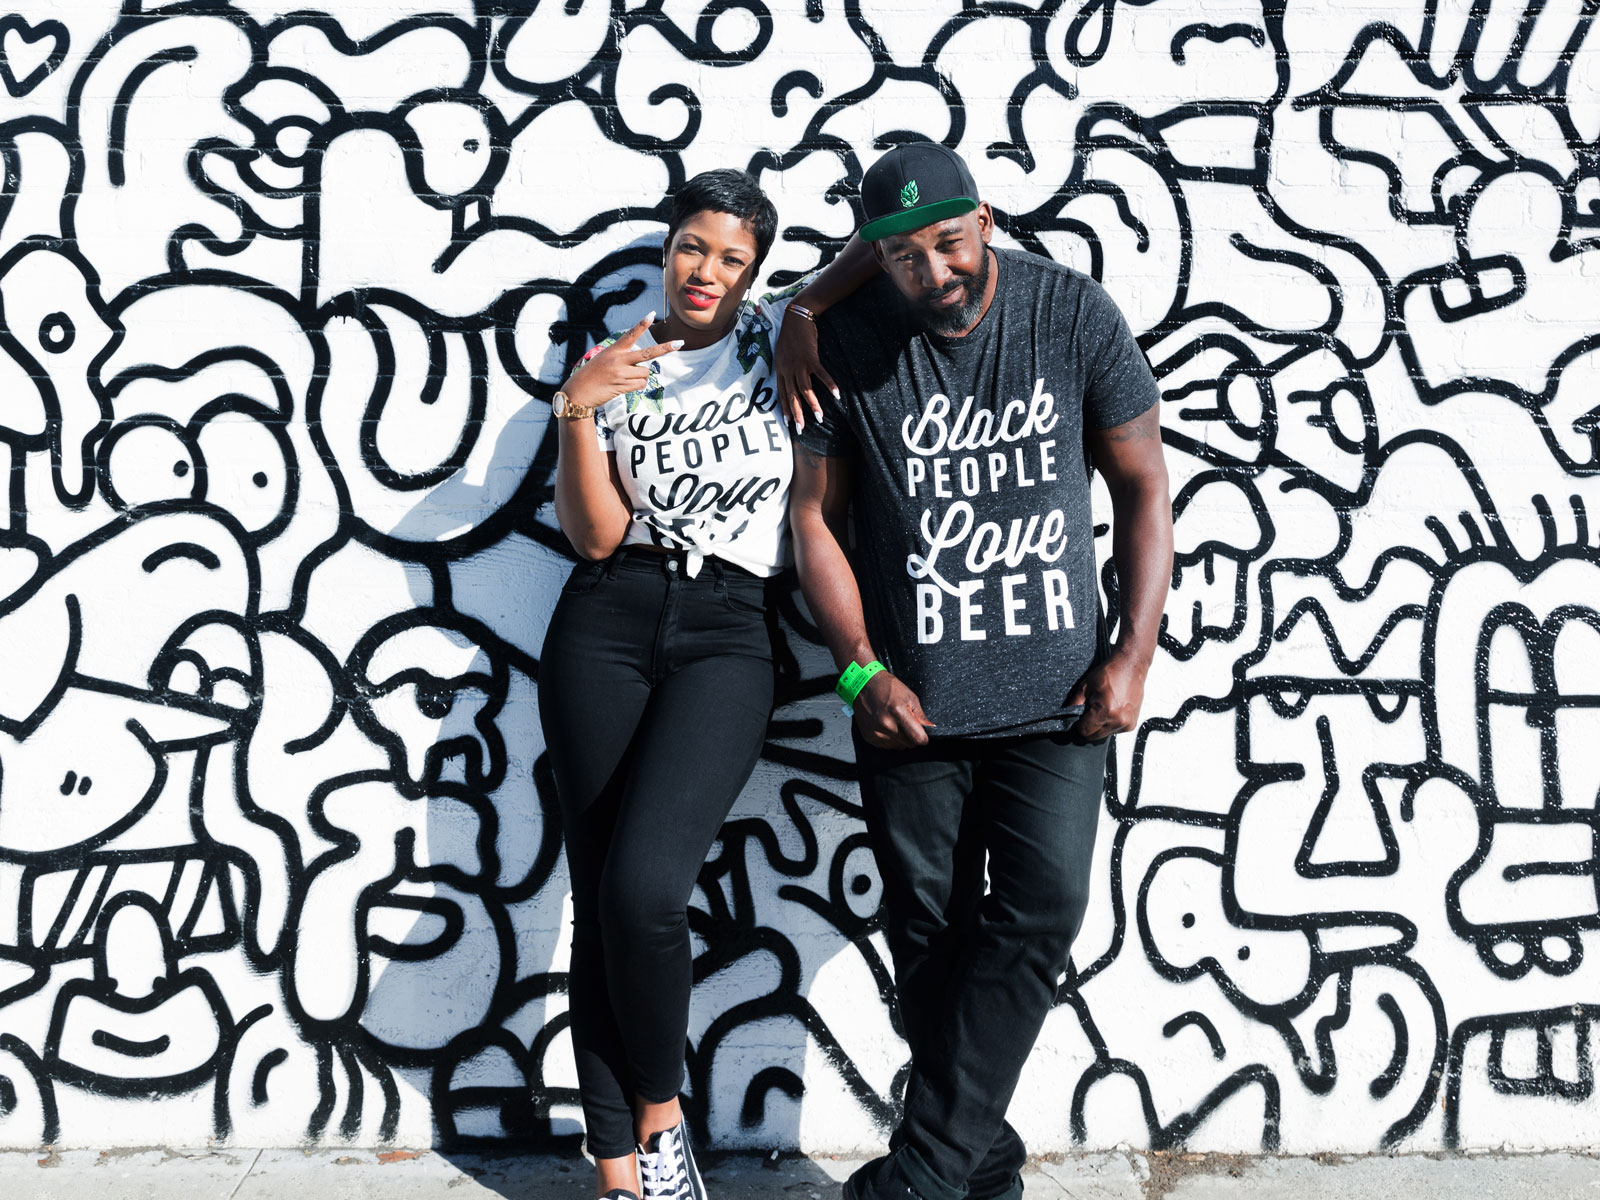 BrewDog Is Turning a Black-Owned Craft Beer Lifestyle Brand into a Line of Brews Aimed at Inclusivity